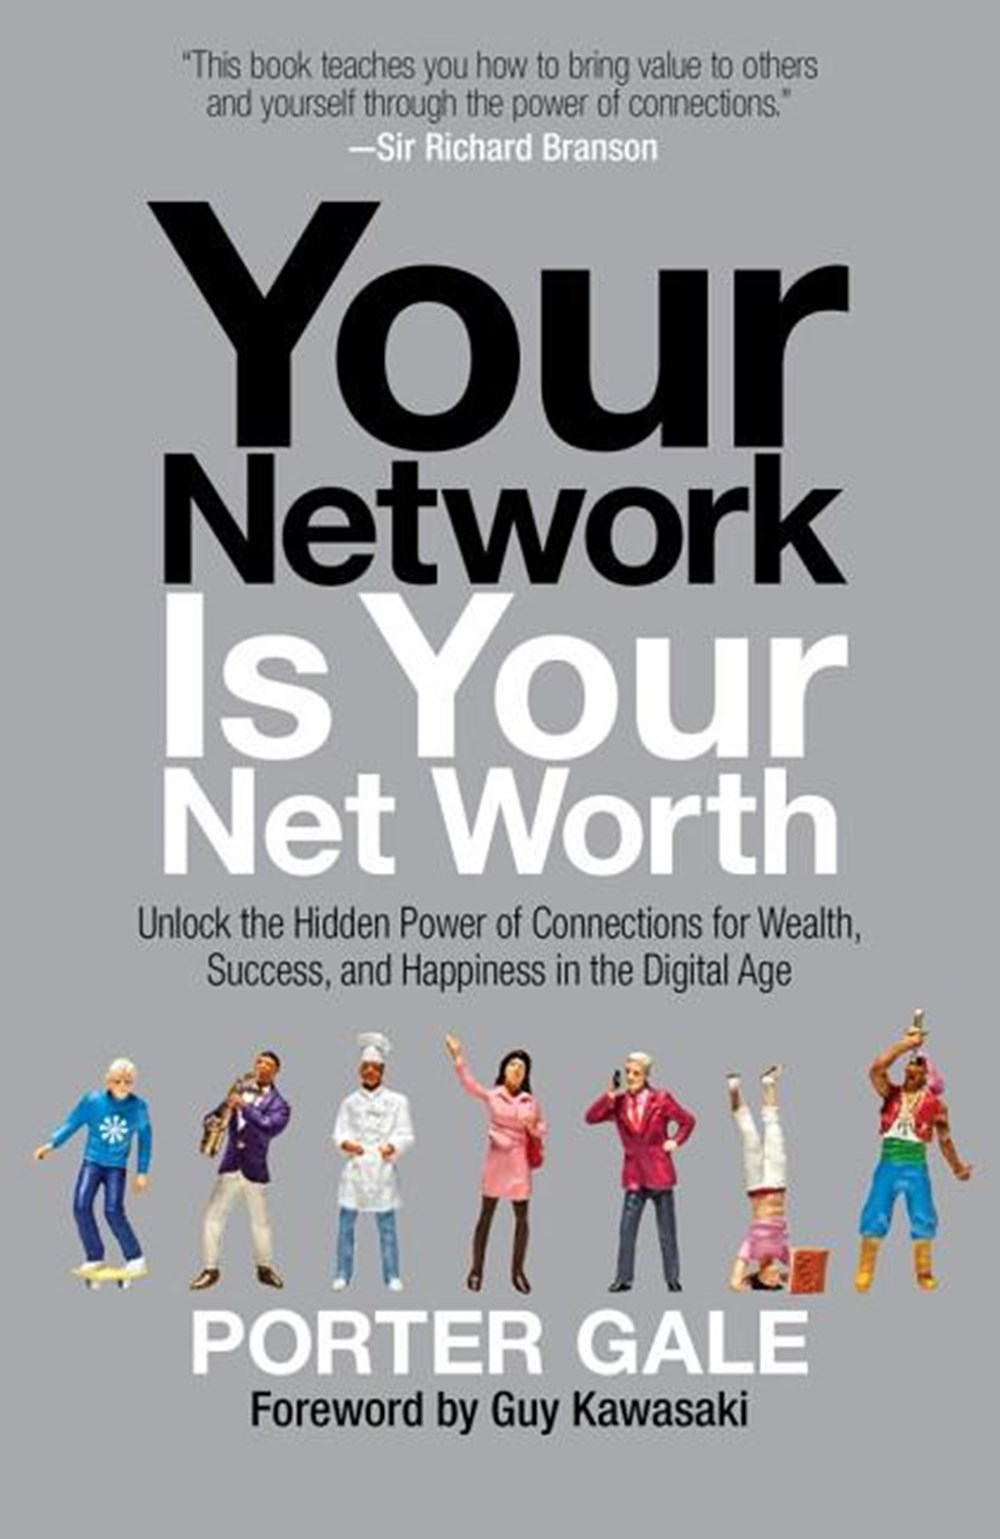 Your Network Is Your Net Worth Unlock the Hidden Power of Connections for Wealth, Success, and Happi